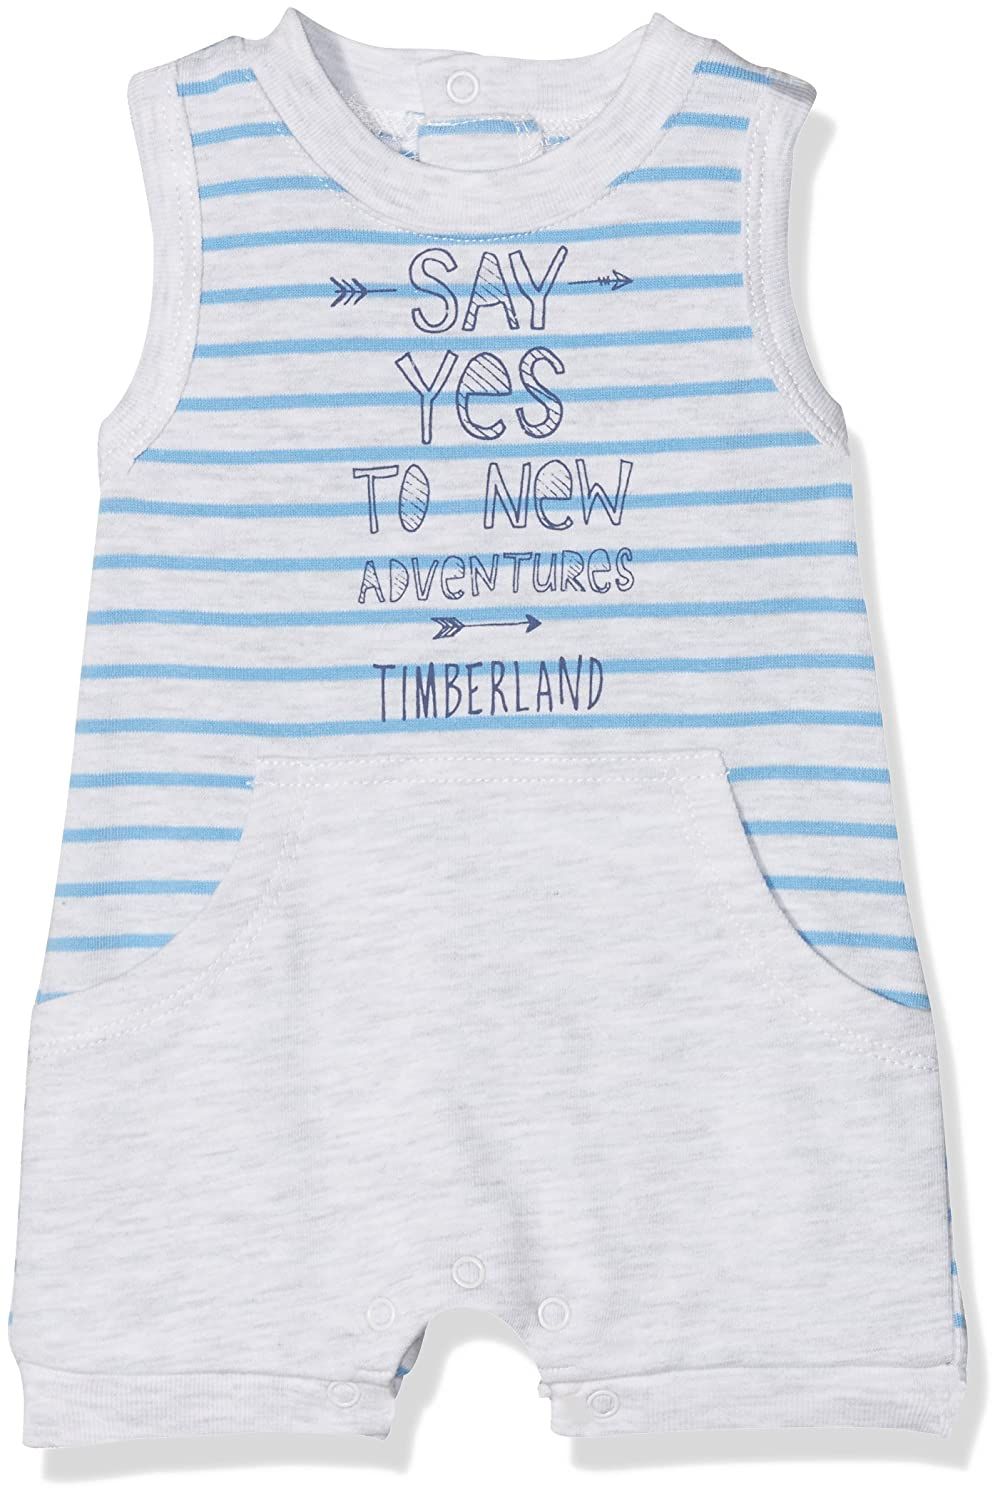 Timberland Baby Boys' Combinaison Courte Dungarees